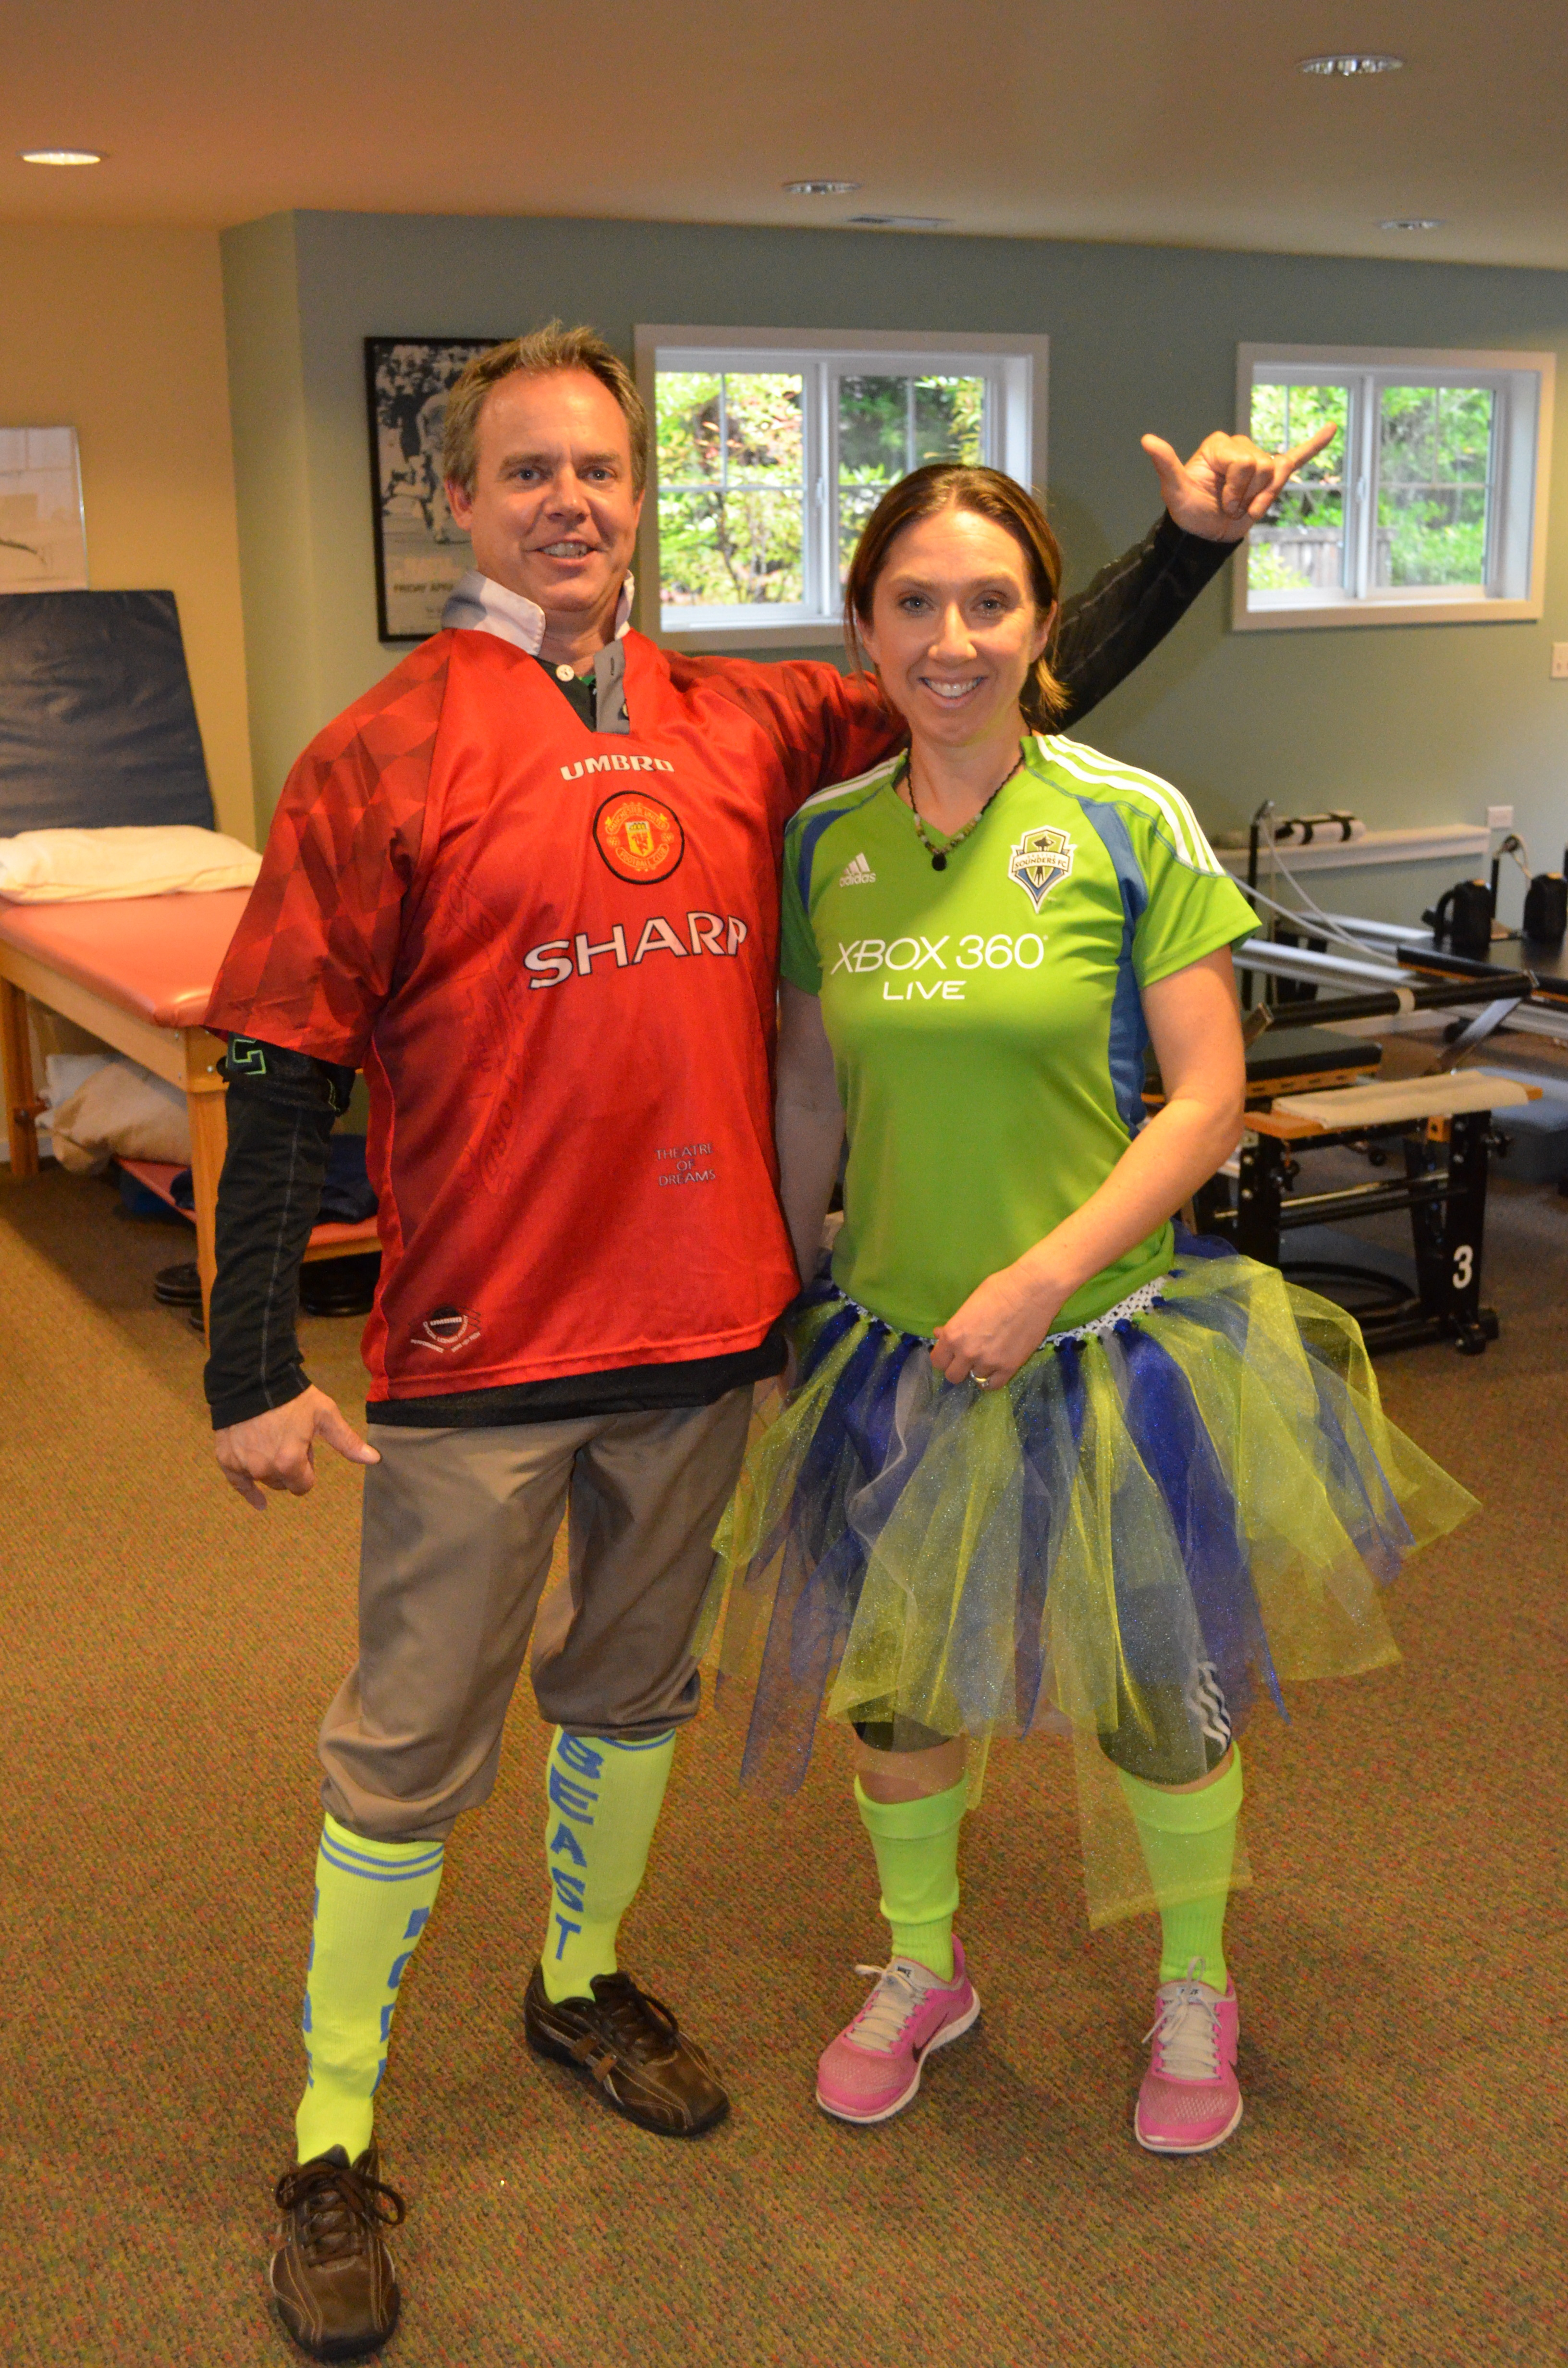 Gig harbor physical therapy - Here We Are Looking A Little Less Festive Grant Spangle Physical Therapy